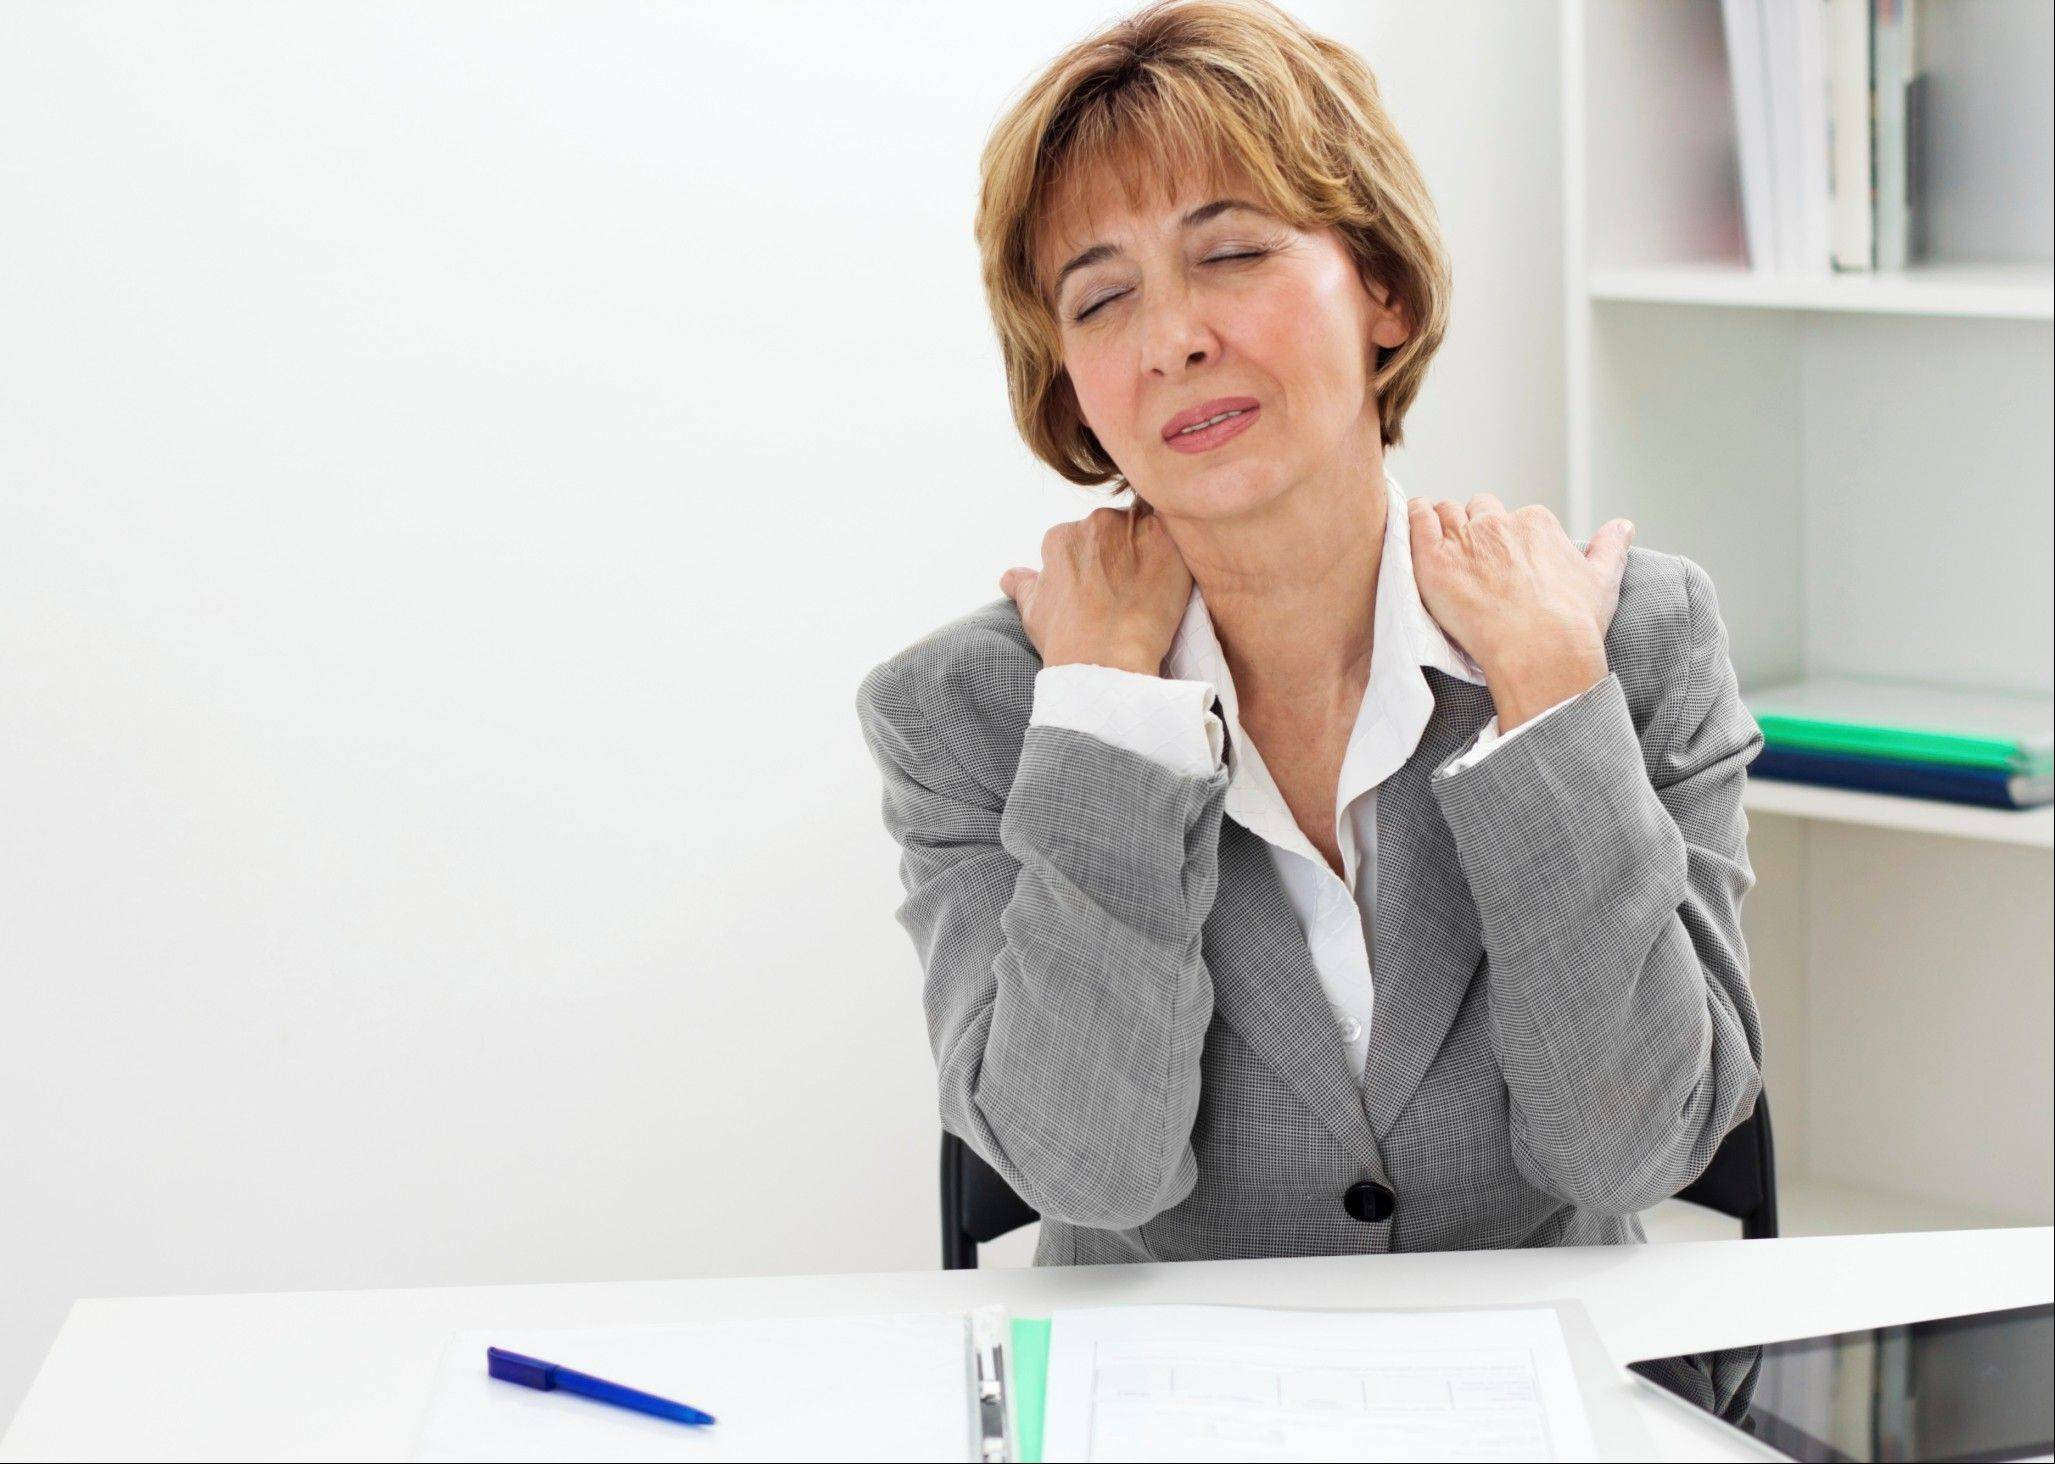 To help avoid neck pain, don't stay in one position for too long. If you get up and move around often enough, you'll avoid getting your neck stuck in an unhealthy position, advises Dr. Zacharia Isaac of Harvard Medical School.